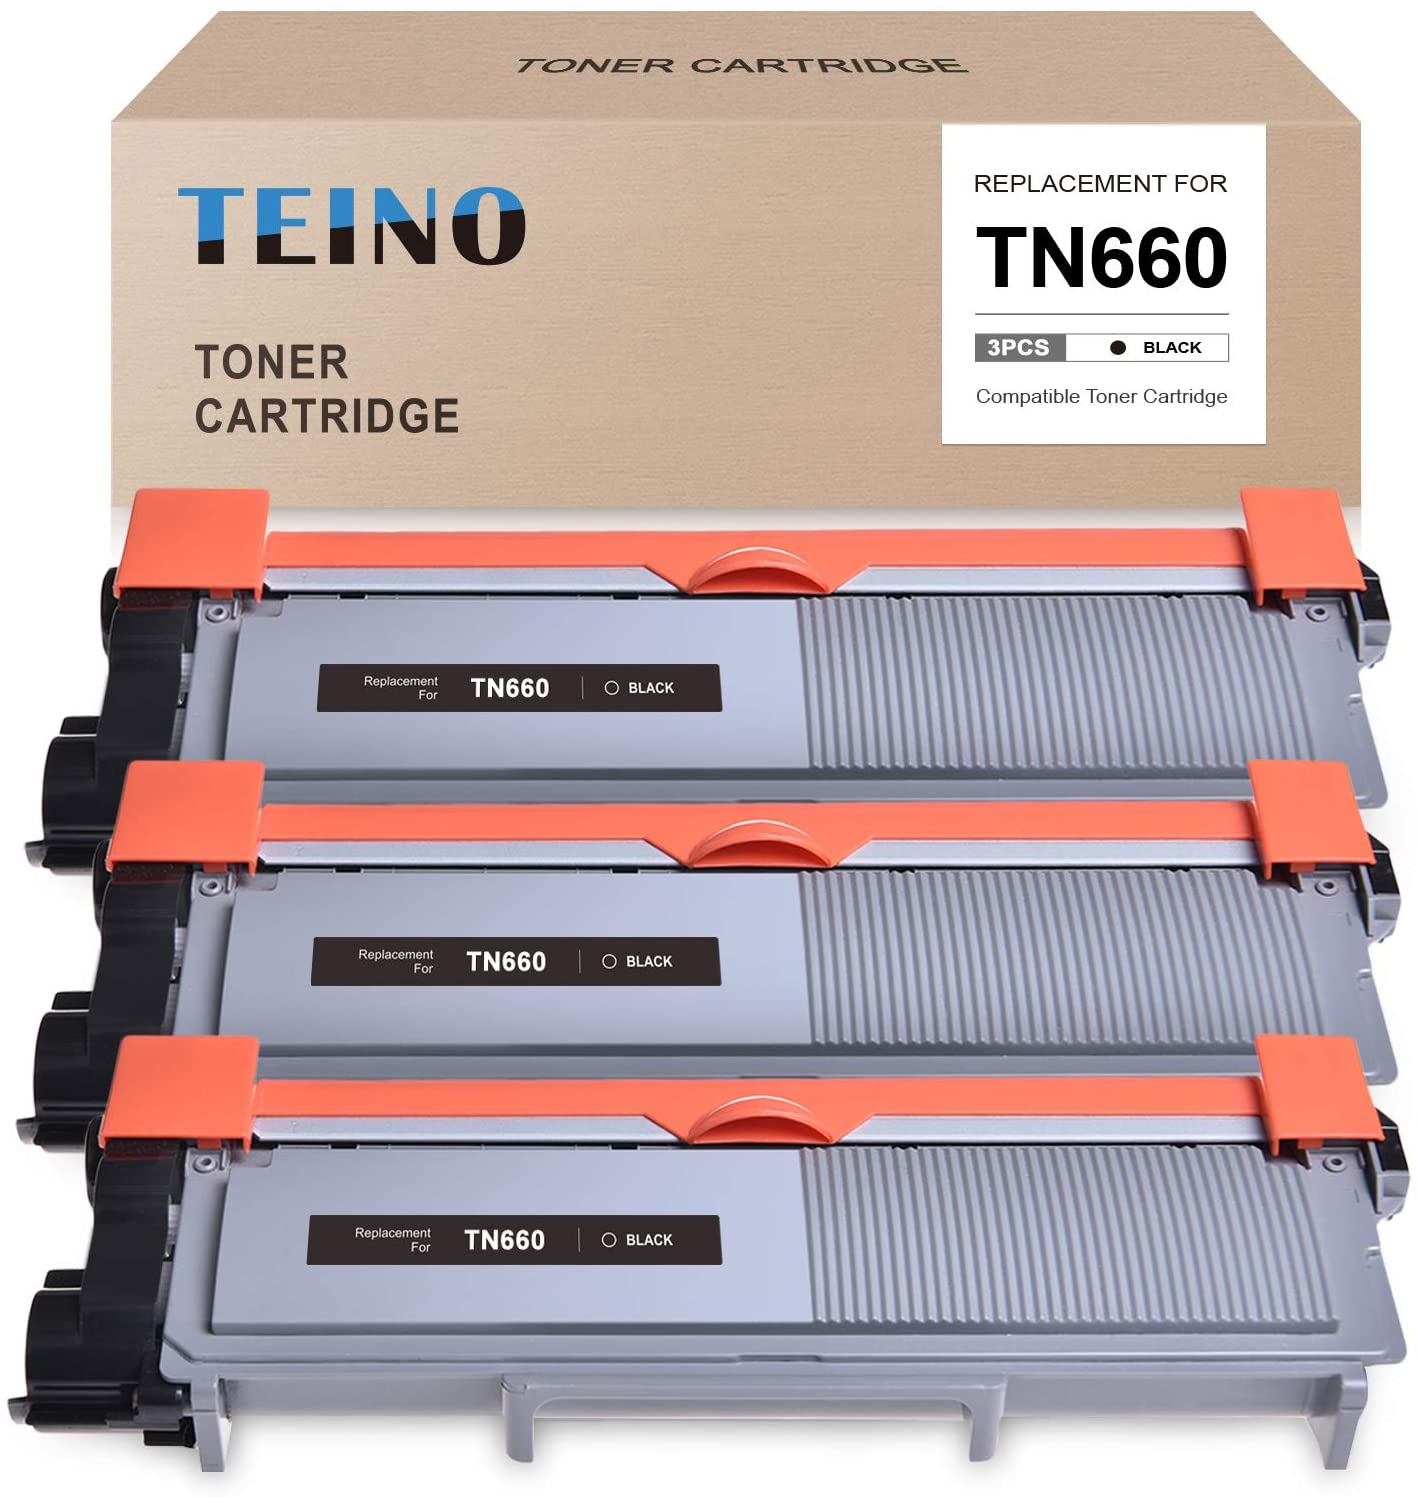 TEINO Compatible Toner Cartridge Replacement for Brother TN660 TN630 use with Brother HL-L2300D HL-L2320D HL-L2340DW HL-L2380DW HL-L2360DW MFC-L2700DW MFC-L2707DW MFC-L2740DW (Black, 3-Pack)